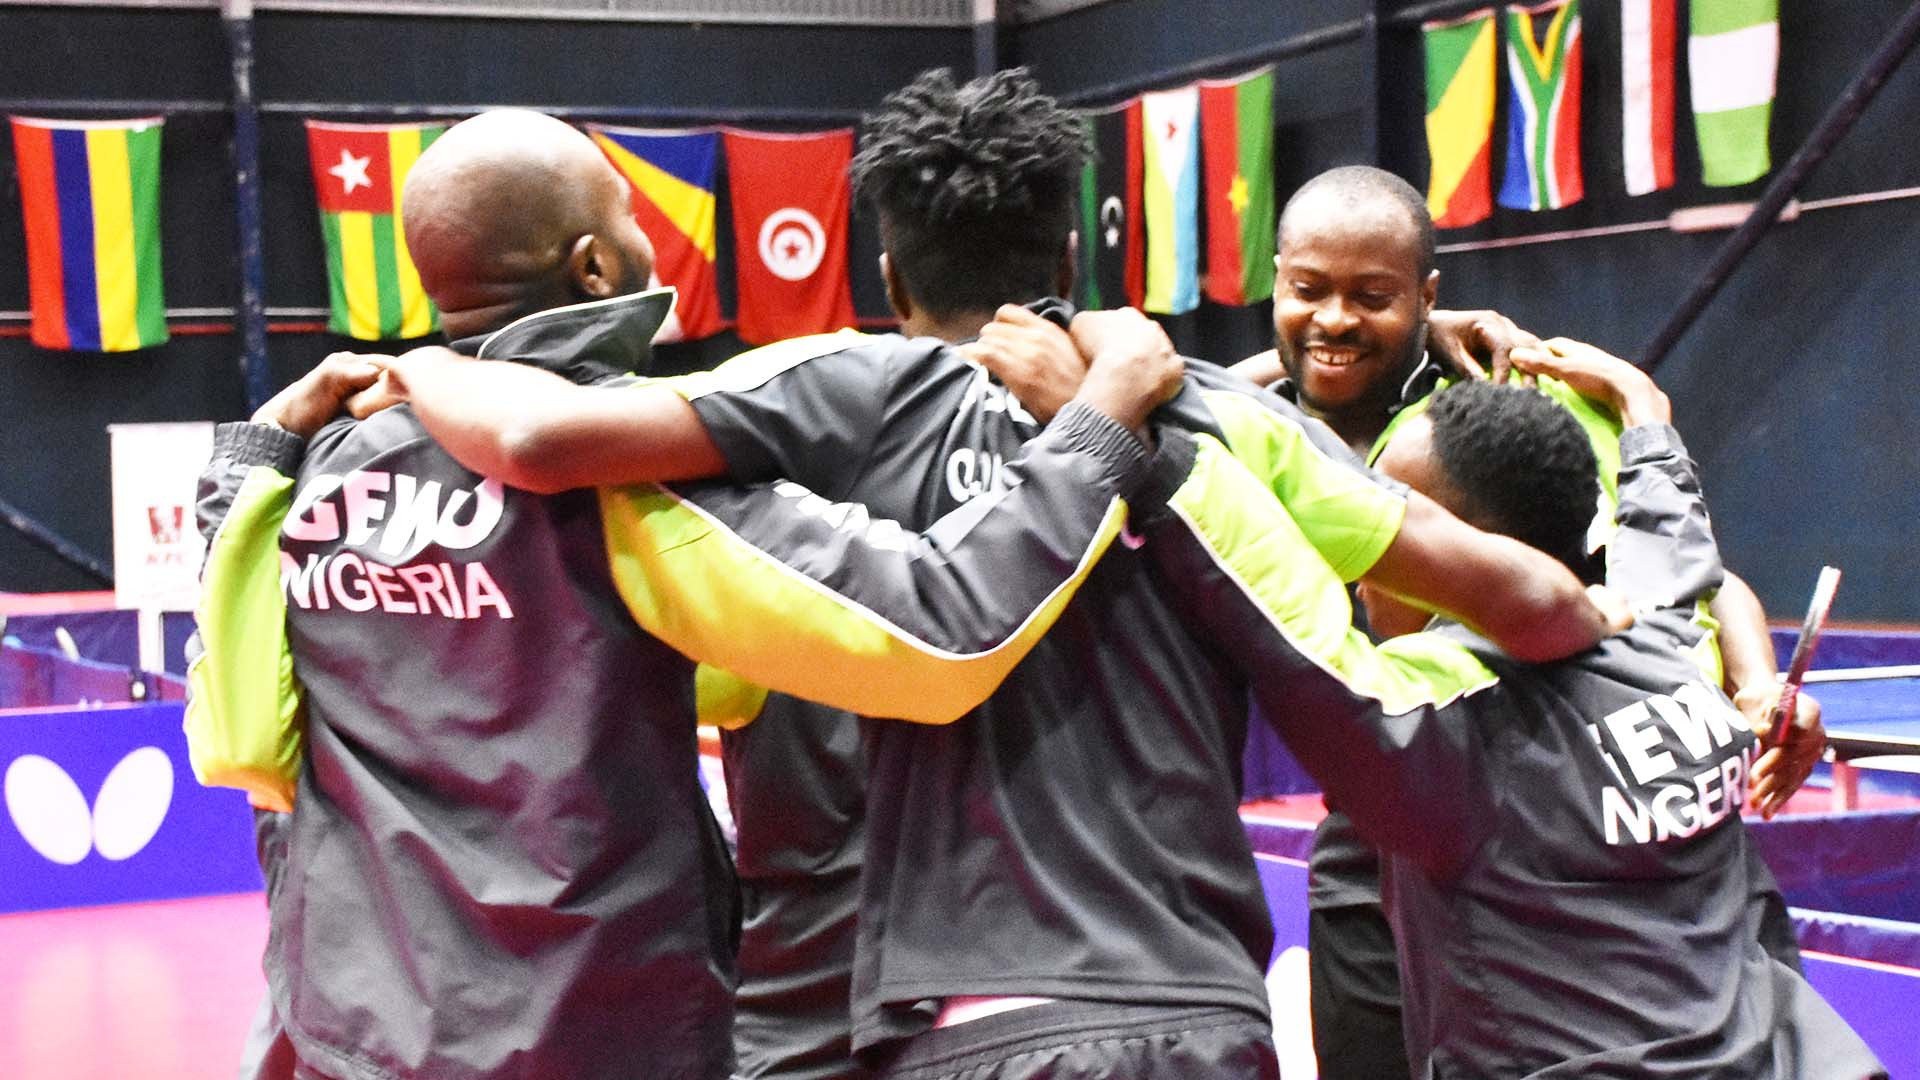 Nigeria and Egypt earn team titles at African Table Tennis Championships in Mauritius